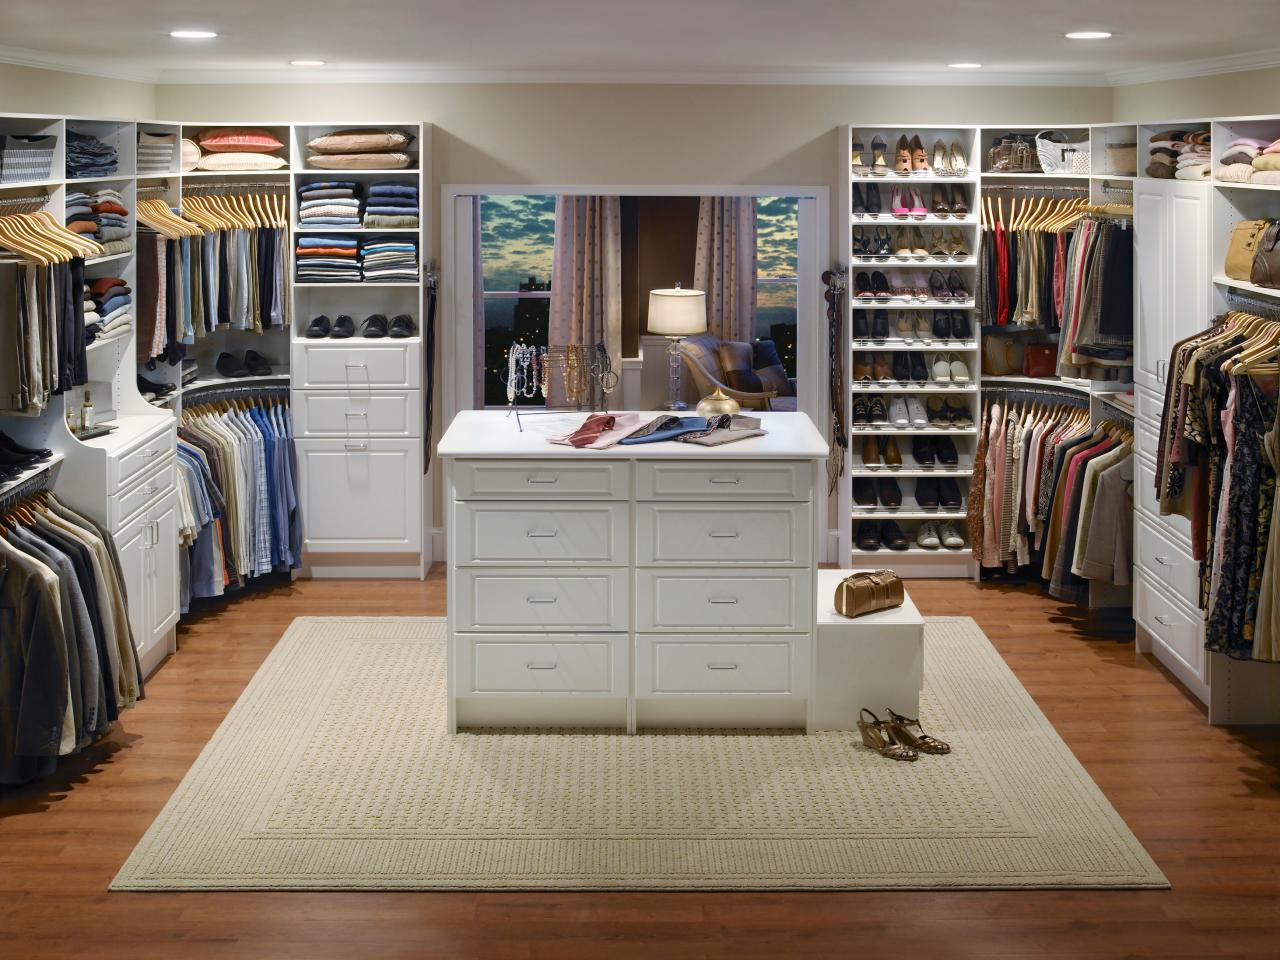 Images of Chic Contemporary master bedroom walk in closet ideas